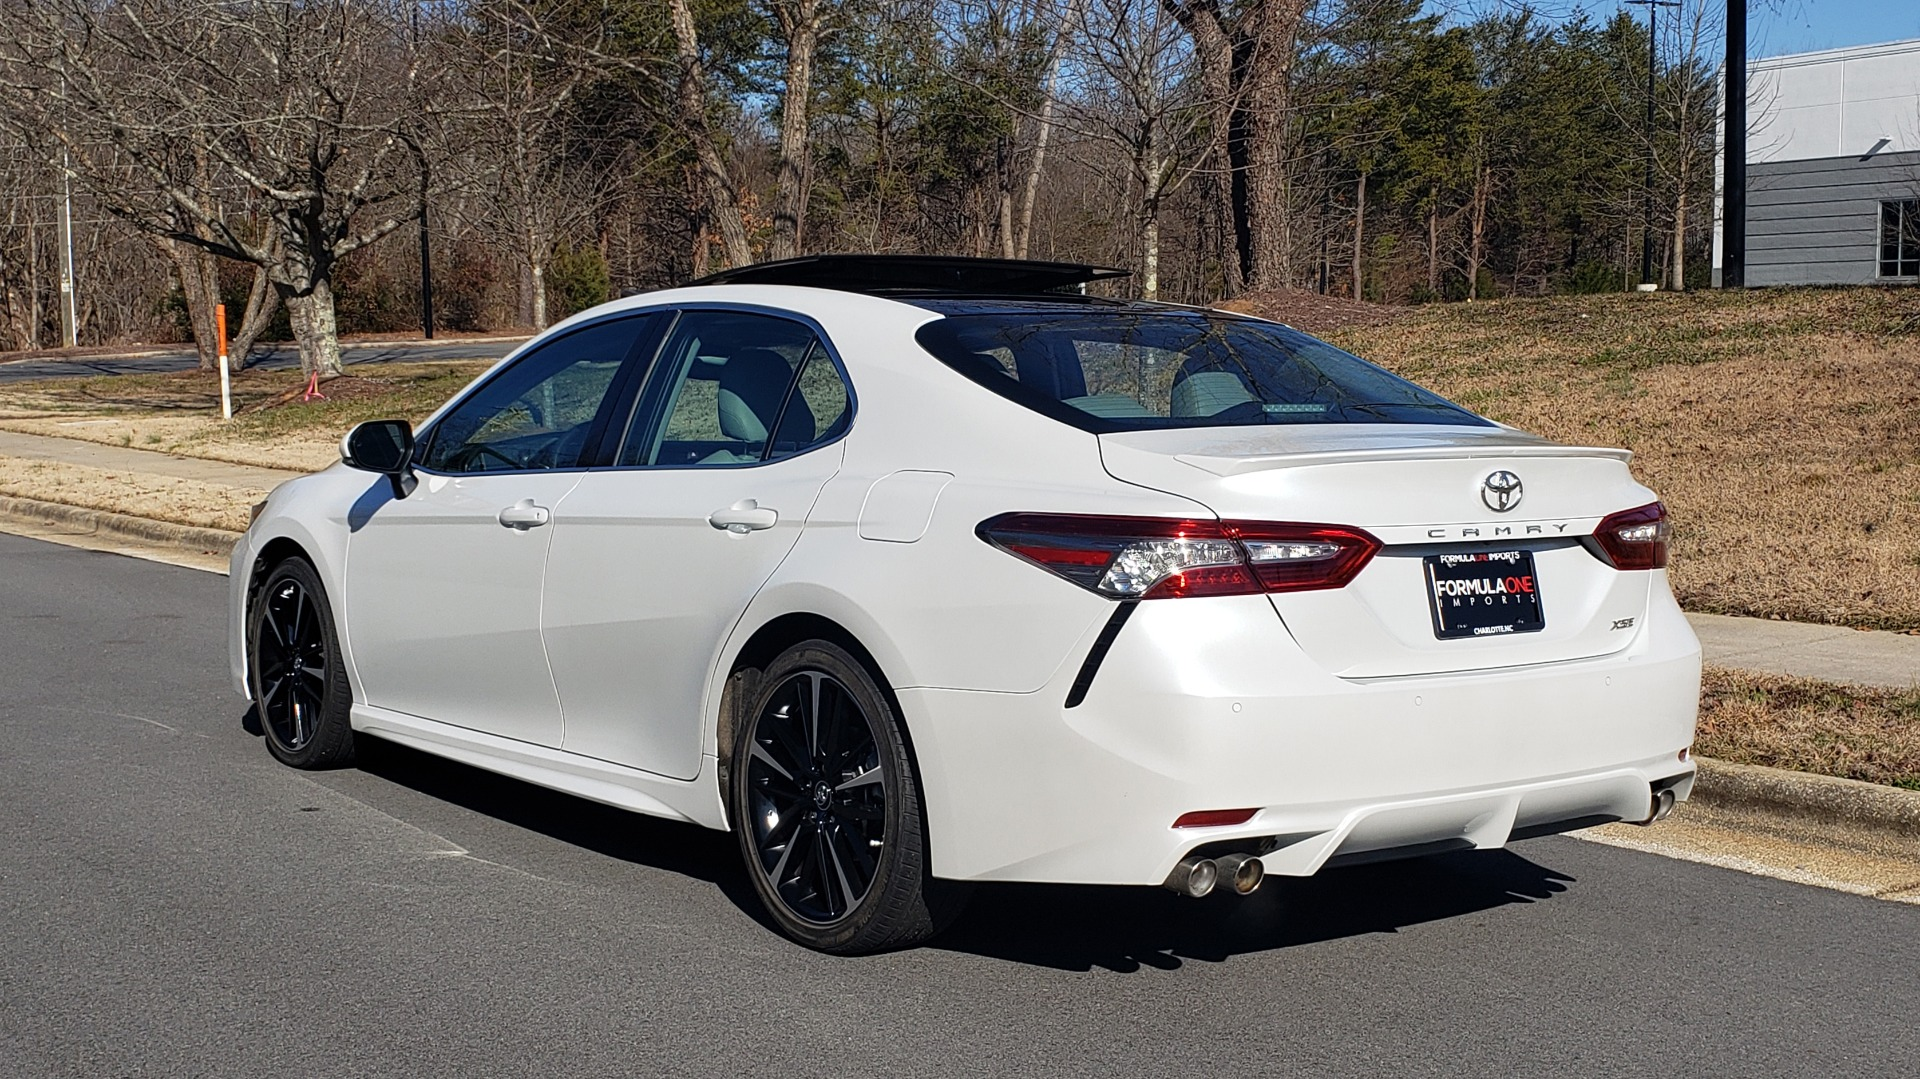 Used 2018 Toyota CAMRY XSE 2.5L SEDAN / 8-SPD AUTO / PANO-ROOF / 19IN WHEELS for sale $22,995 at Formula Imports in Charlotte NC 28227 4